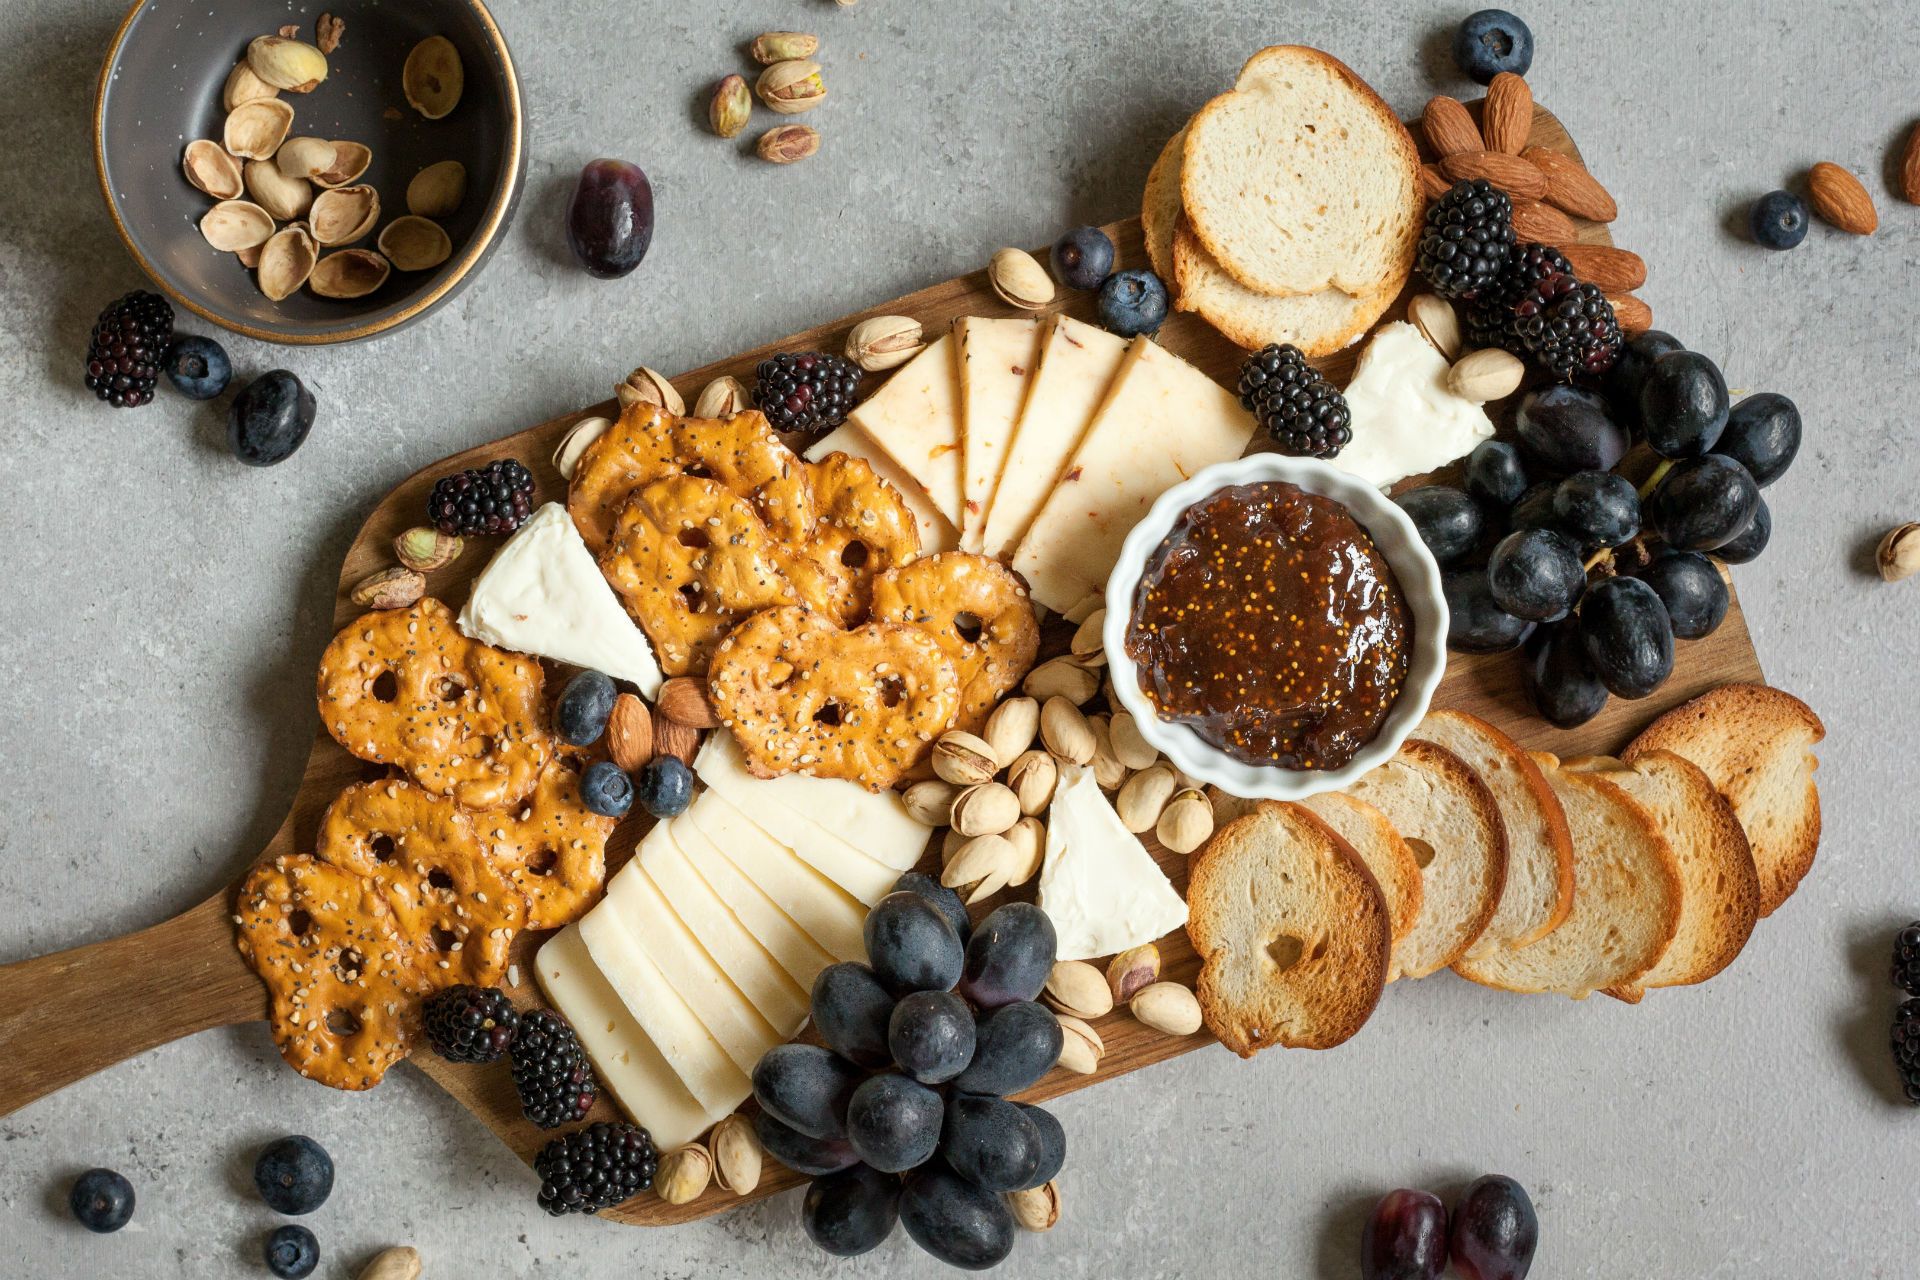 cheeseboard with crackers, fruit and grainy mustard